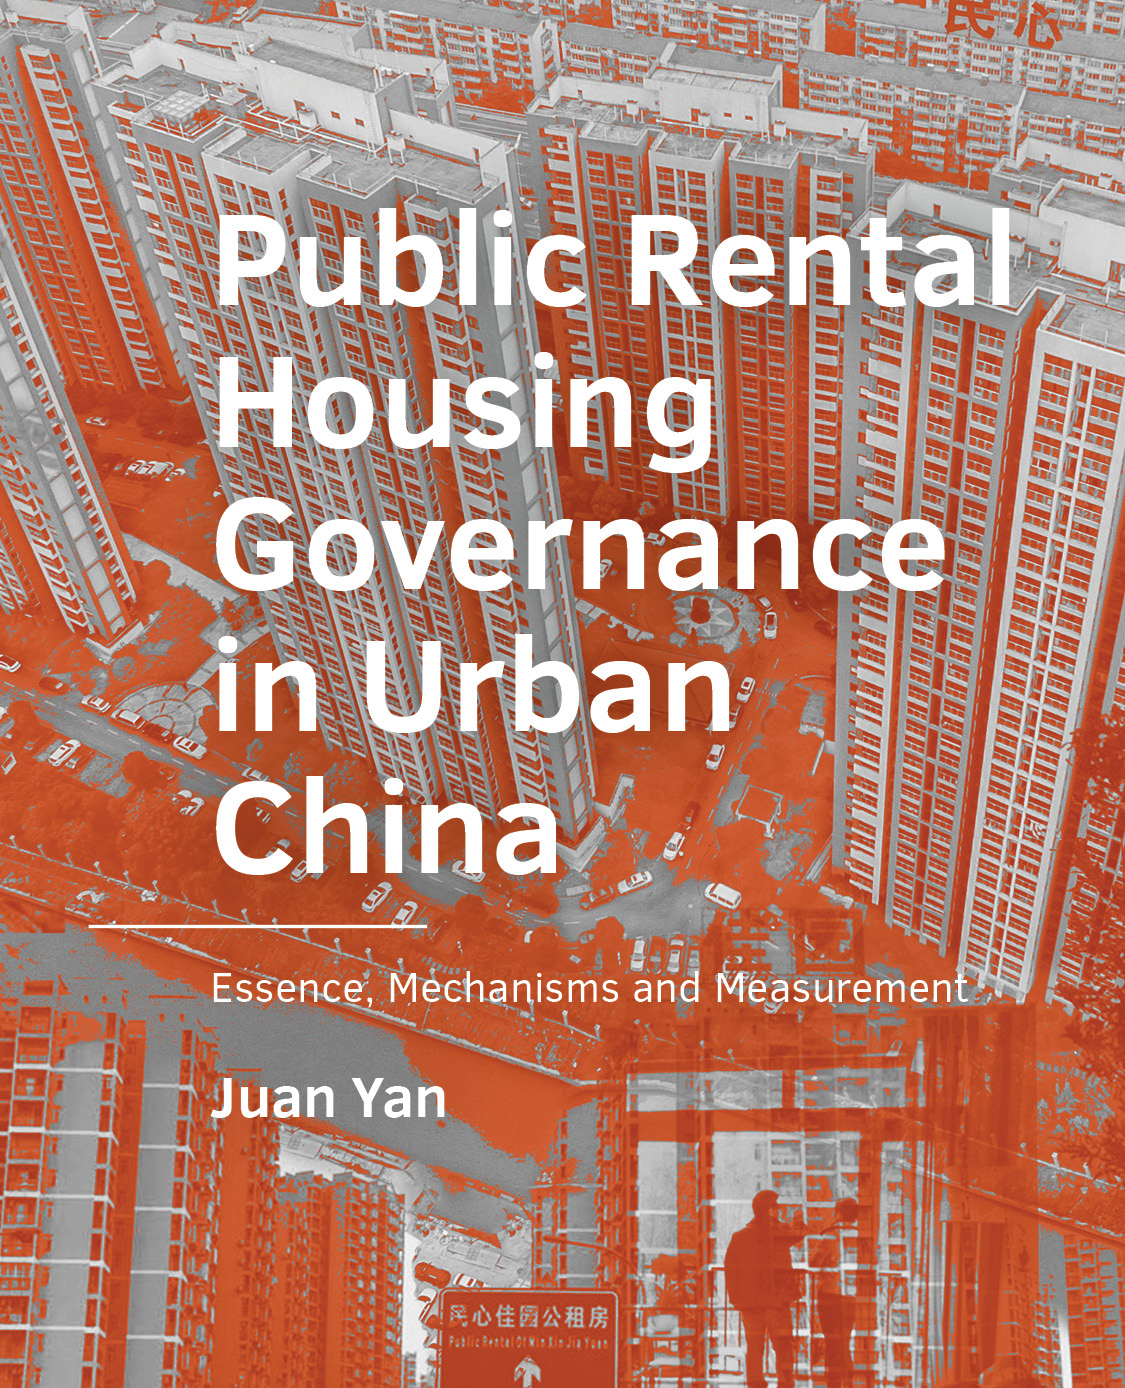 View No. 01 (2021): Public Rental Housing Governance in Urban China